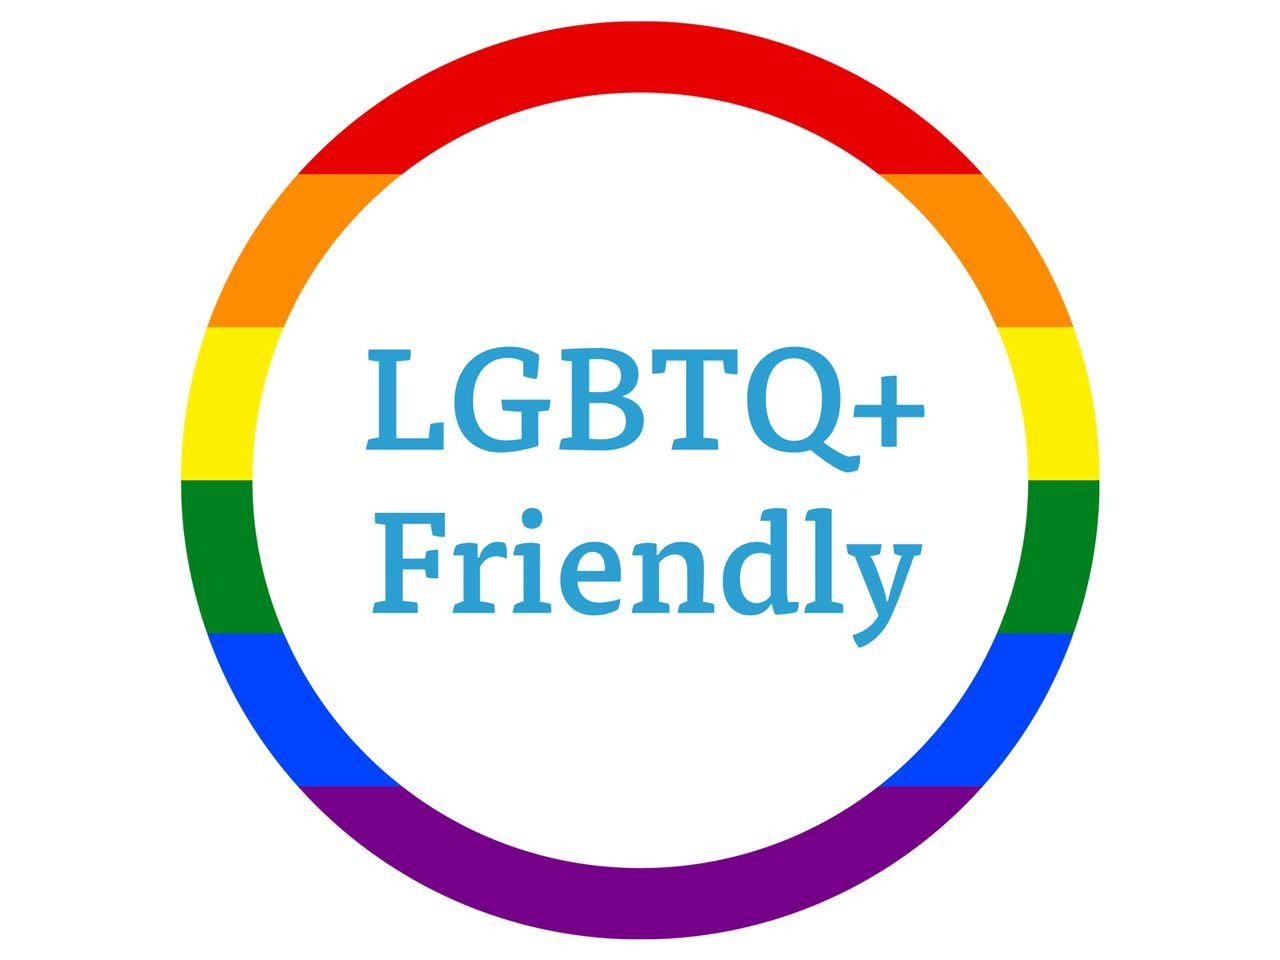 5 Sneaky Ways to Tell If a Vendor Is LGBTQ+ Friendly (With images ...